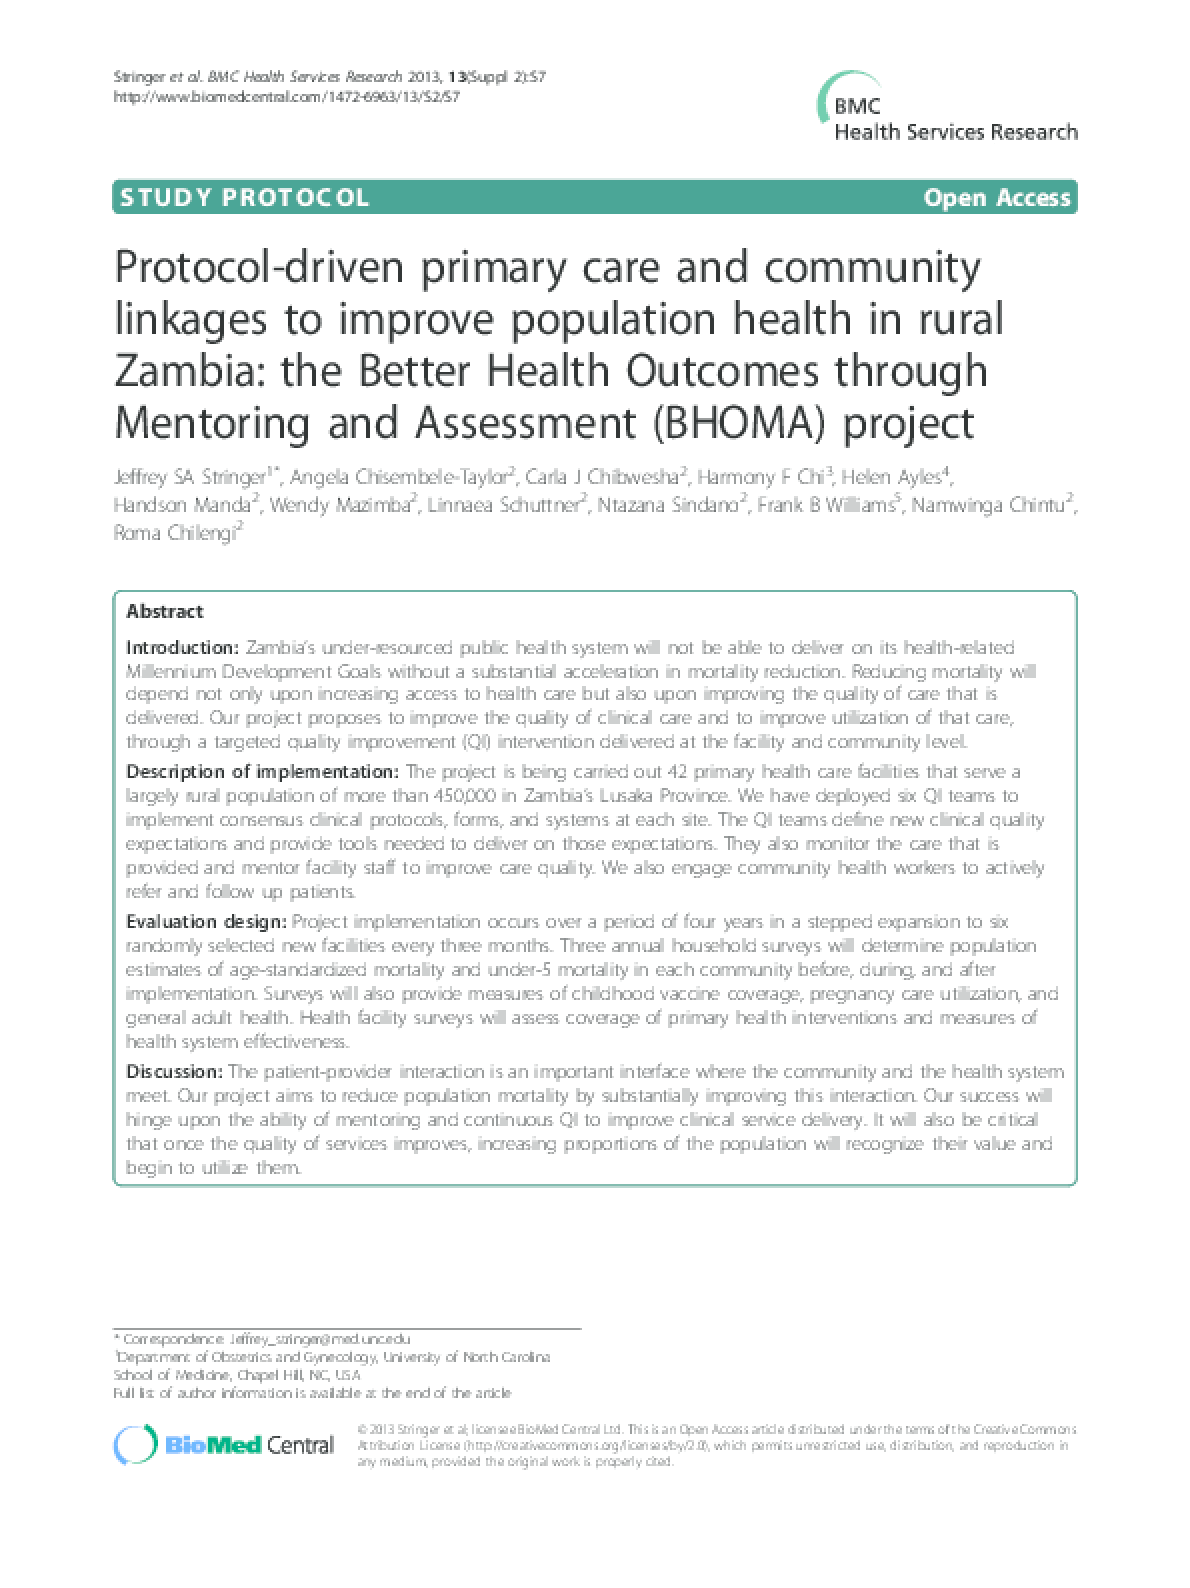 Protocol-Driven Primary Care and Community Linkages to Improve Population Health in Rural Zambia: the Better Health Outcomes through Mentoring and Assessment (BHOMA) Project